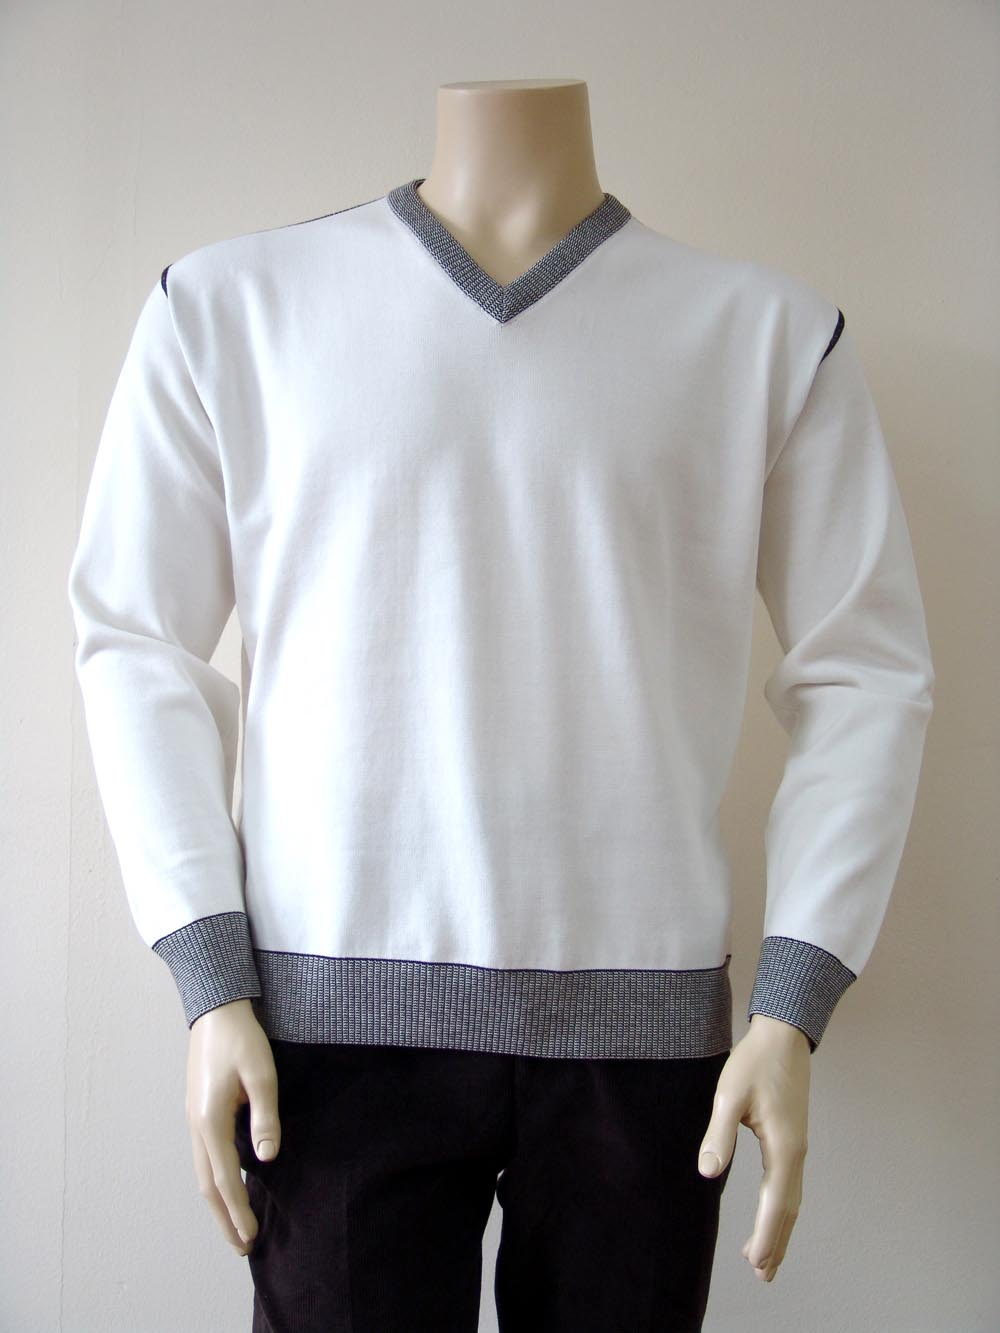 Интертекс 2000 АД Intertex sweater collection Esigente 2009